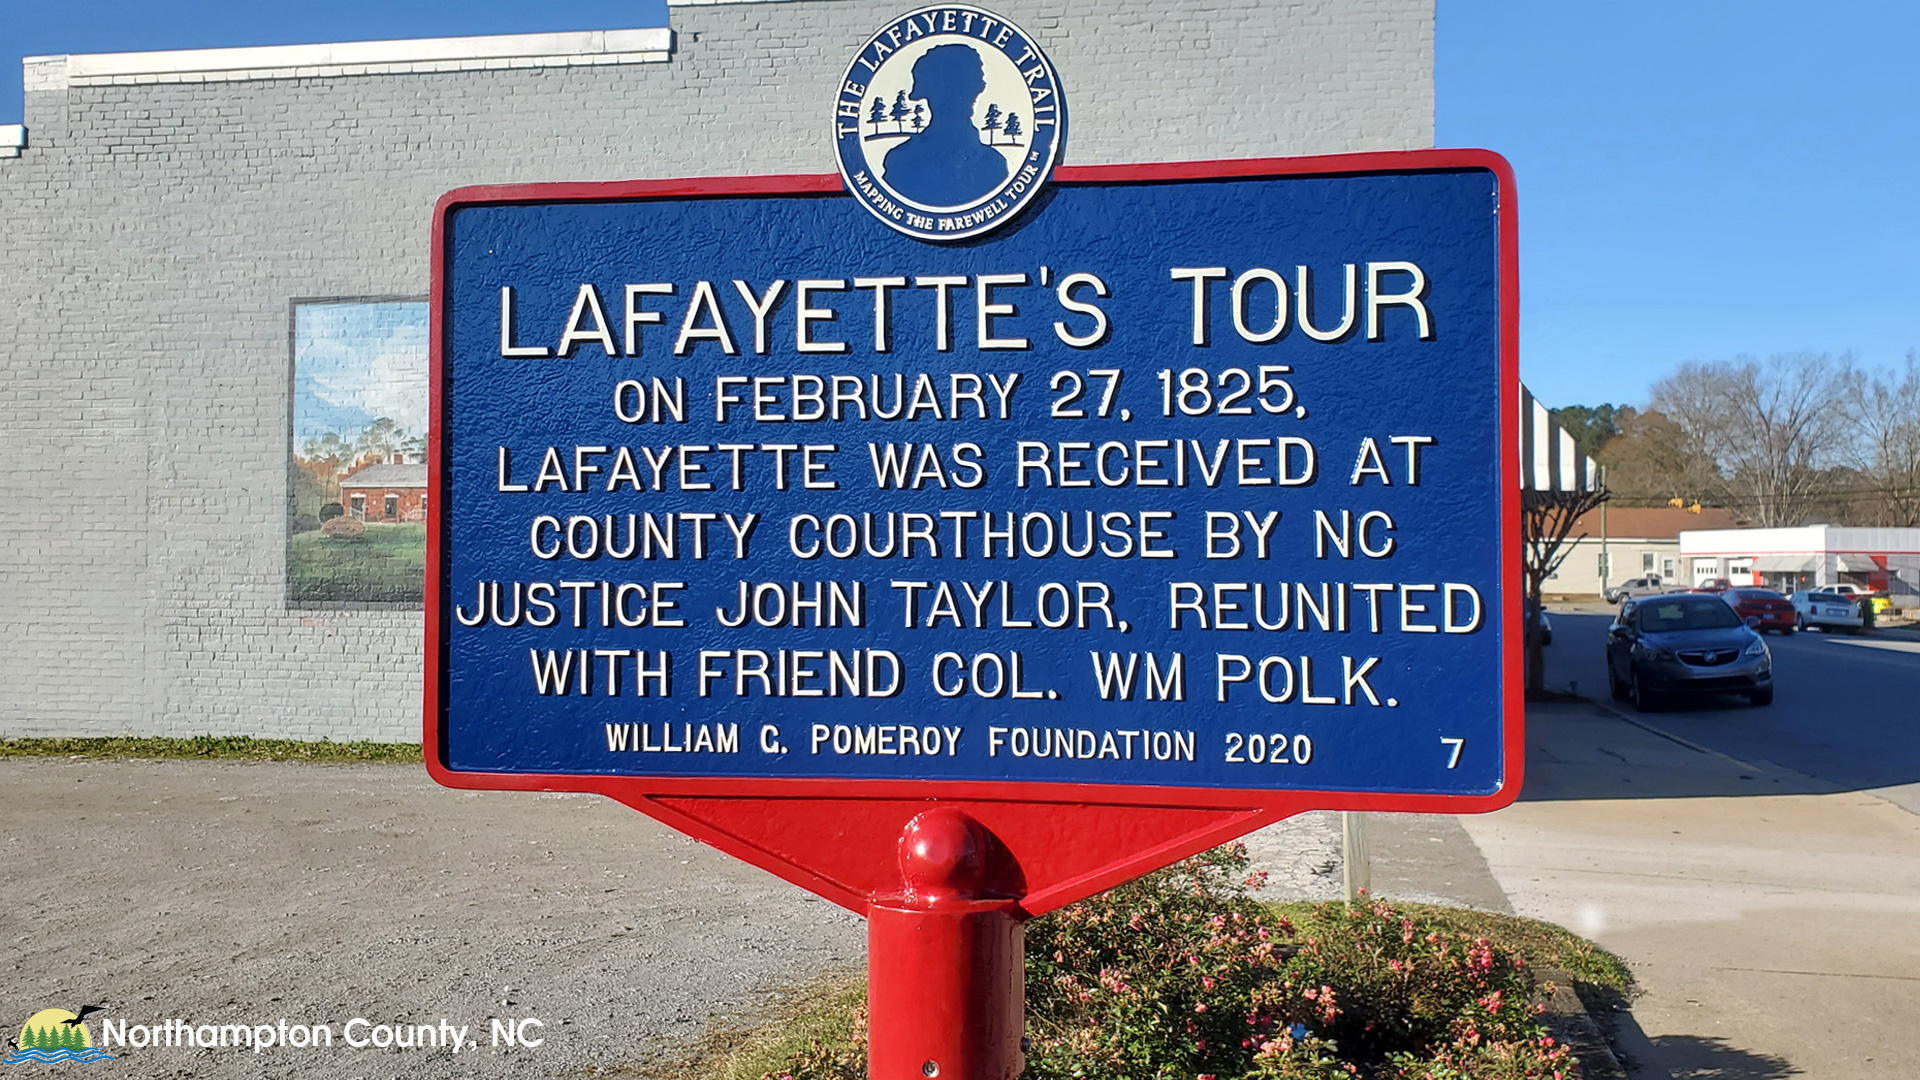 Lafayette Trail Marker Dedication Ceremony